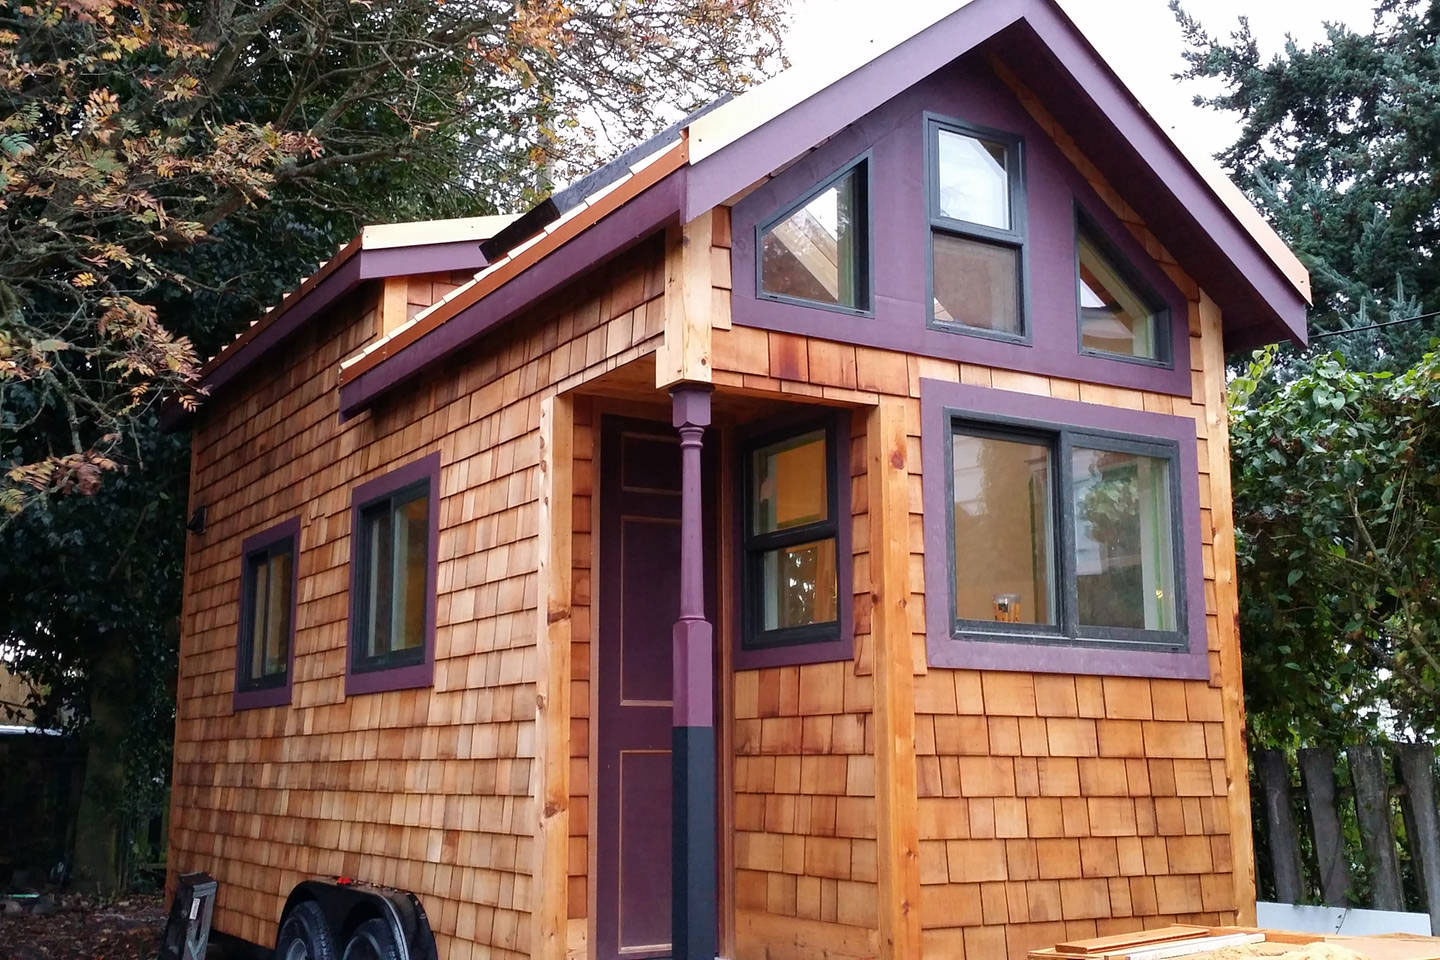 Stay in hannah 39 s tiny house in seattle small is beautiful for Little house